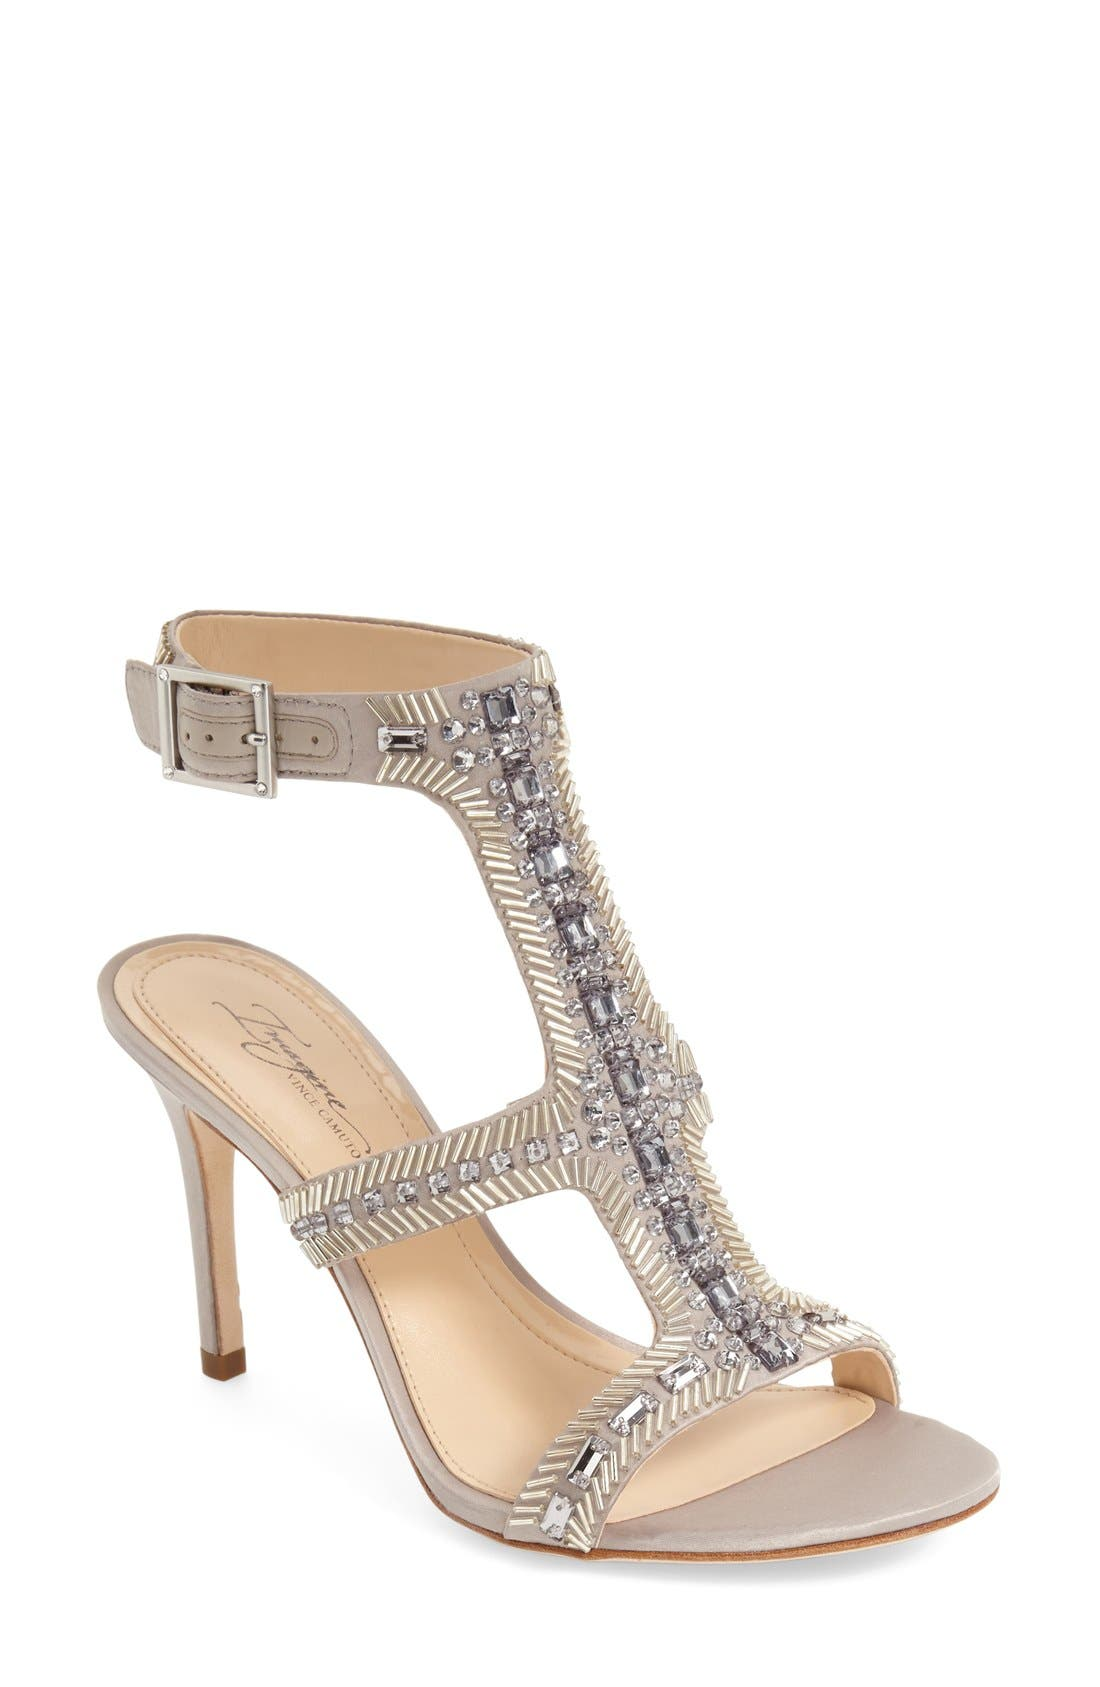 Imagine Vince Camuto 'Price' Beaded T-Strap Sandal,                             Main thumbnail 1, color,                             Stone